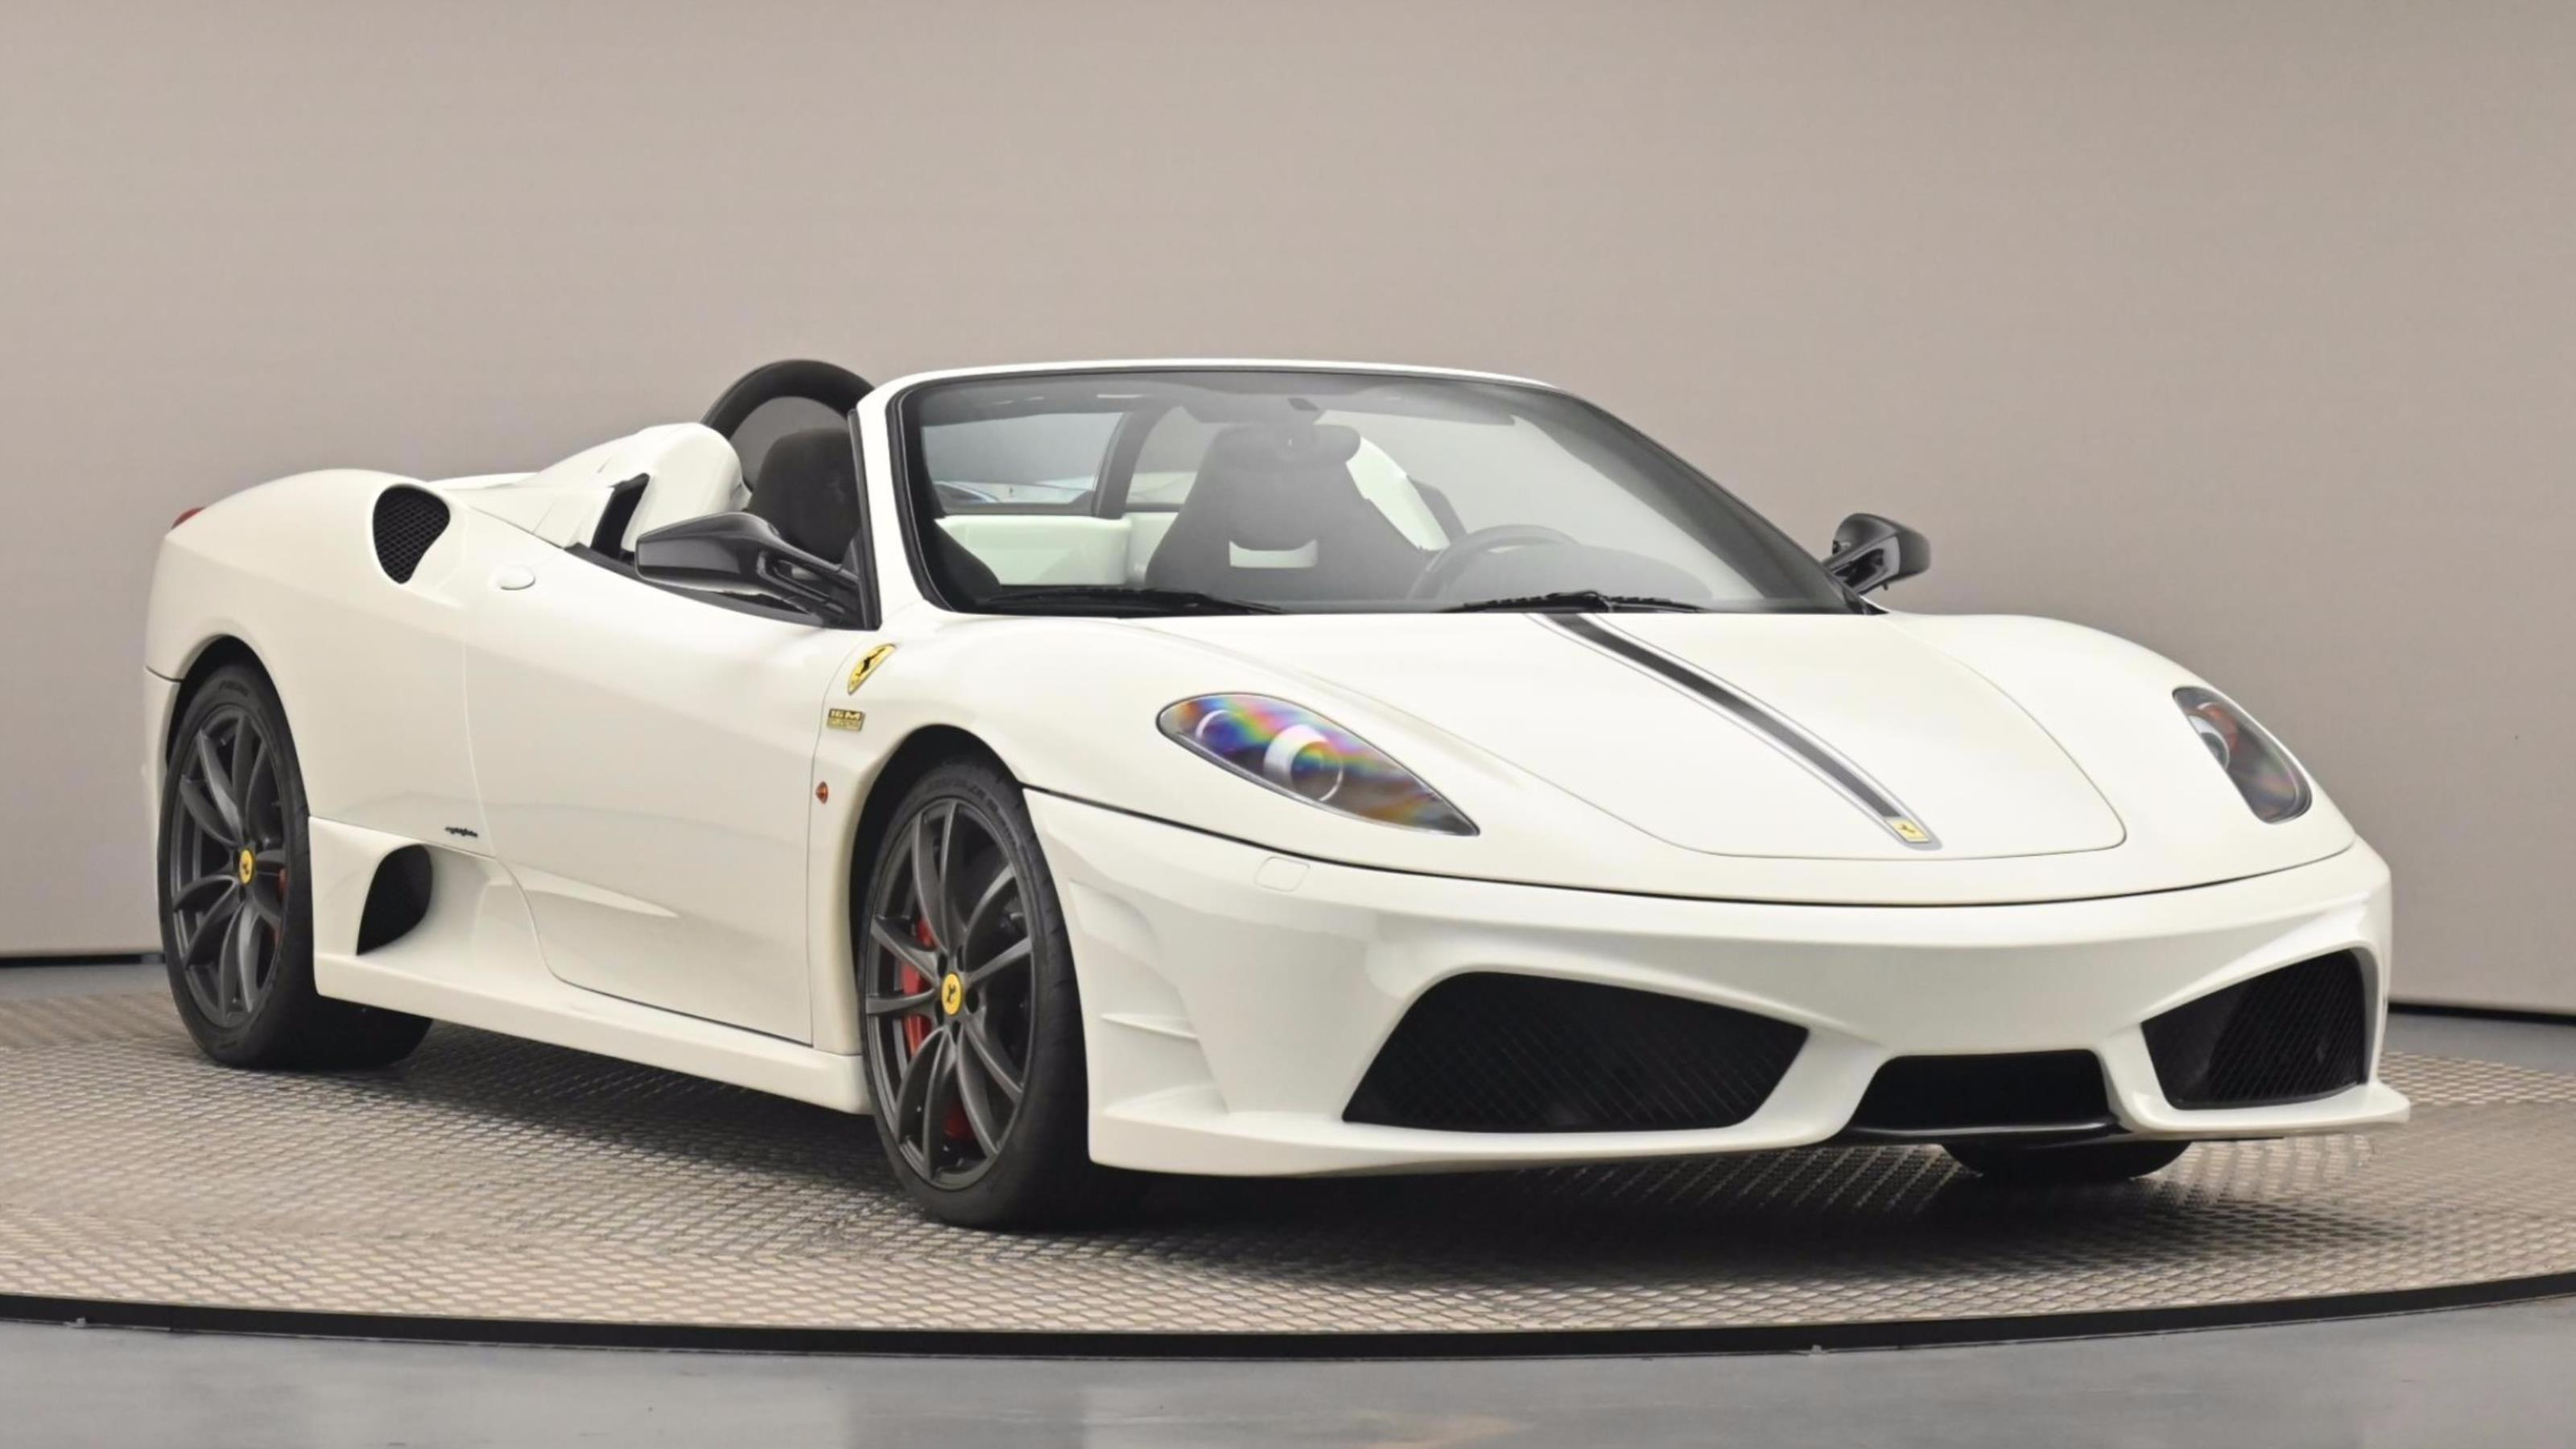 Used 2009 Ferrari F430 SCUDERIA SPIDER 16M White at Saxton4x4